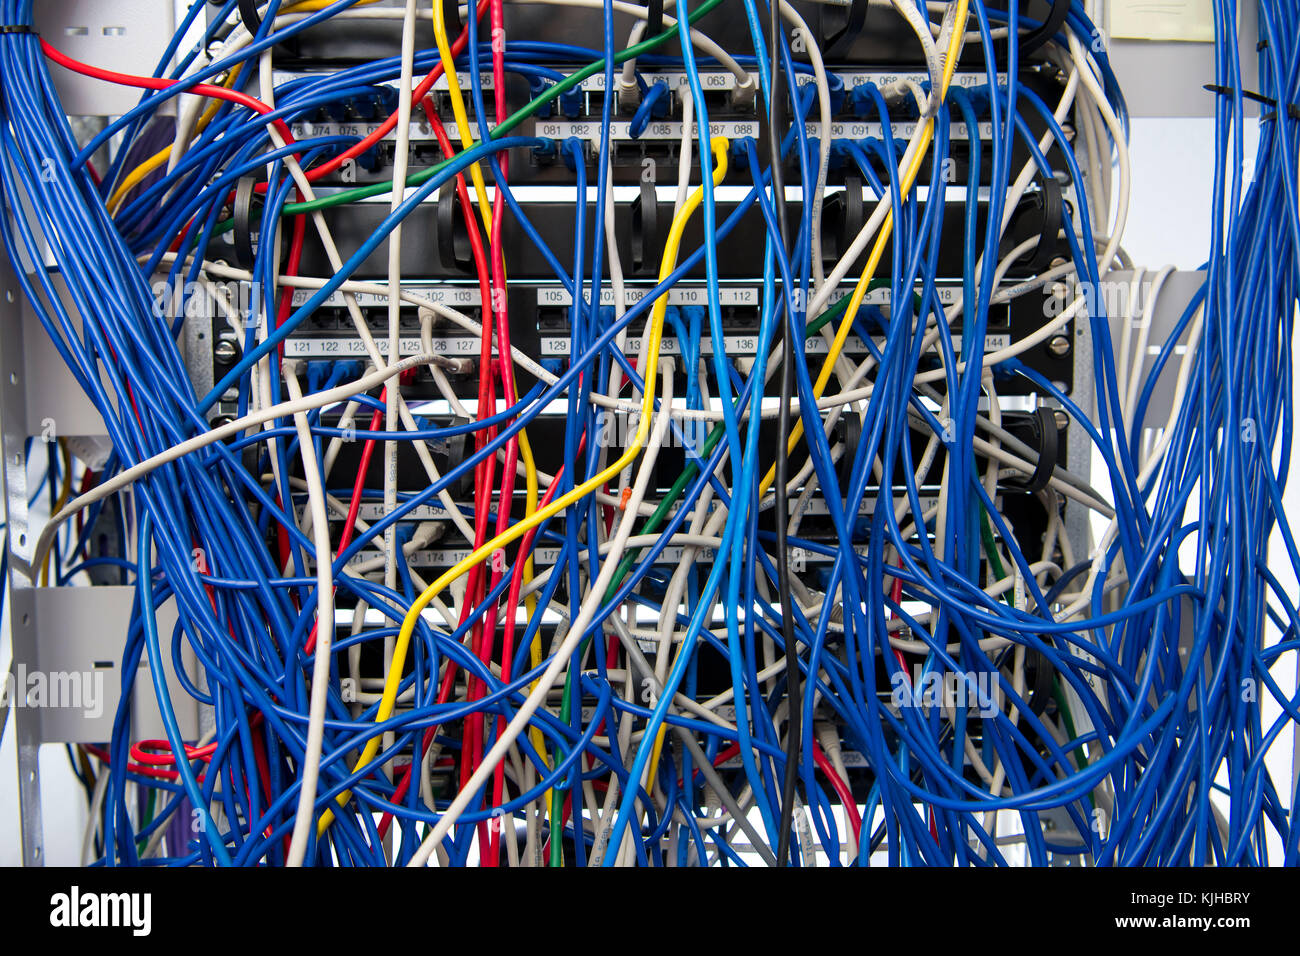 A Mess Of Cables Stock Photos Images Alamy Internet Wiring Closet Computer Network Server Cabinet With Tangled Blue Coloured